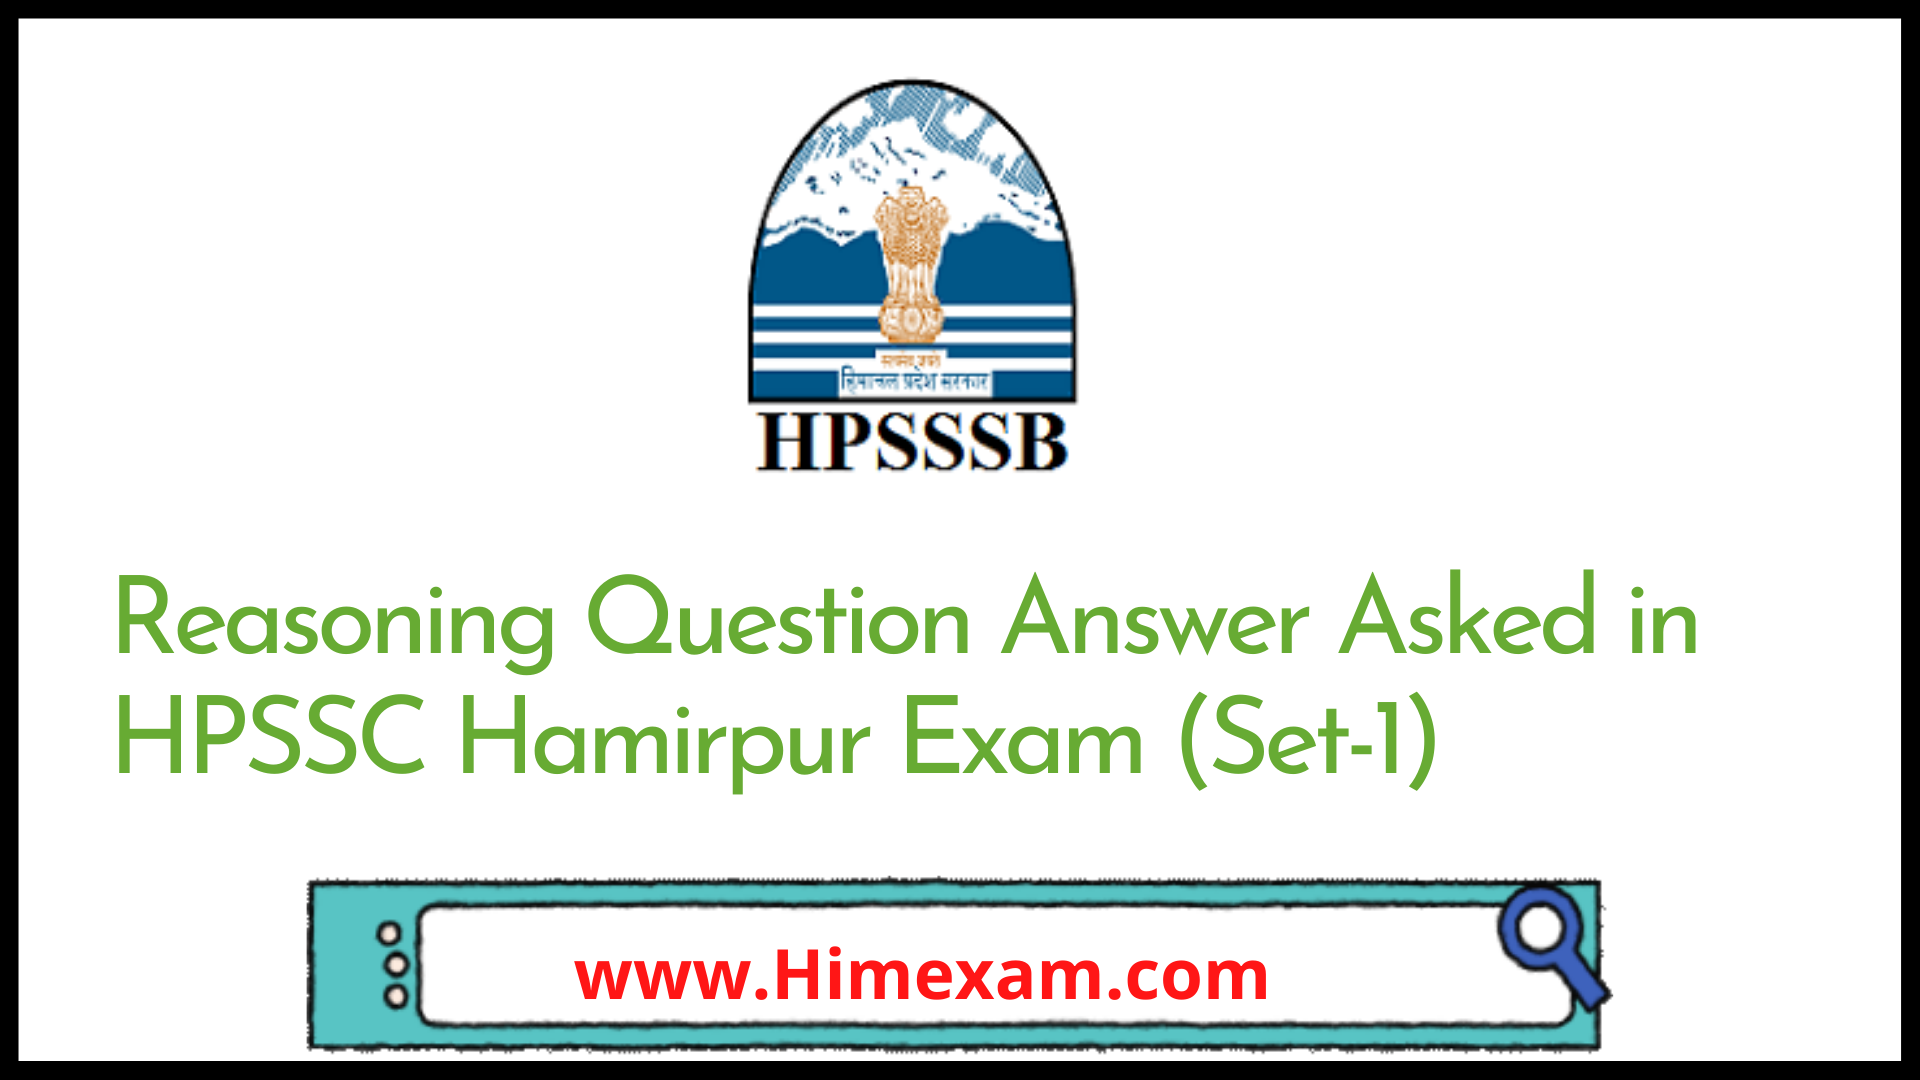 Reasoning Question Answer Asked in HPSSC Hamirpur Exam (Set-1)